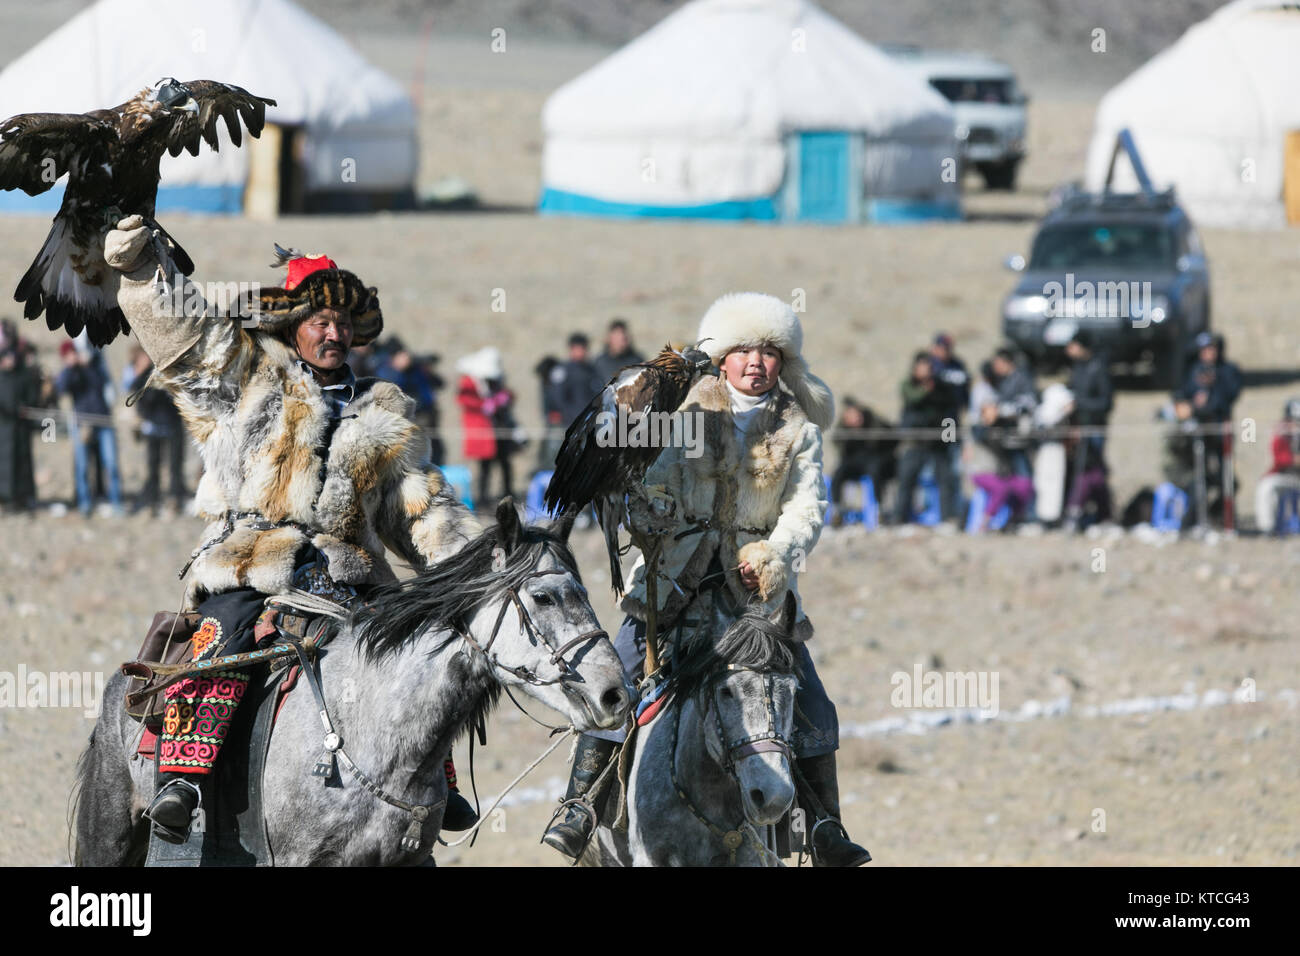 Aisholpan and her father from The Eagle Huntress at the Golden Eagle Festival in Mongolia - Stock Image